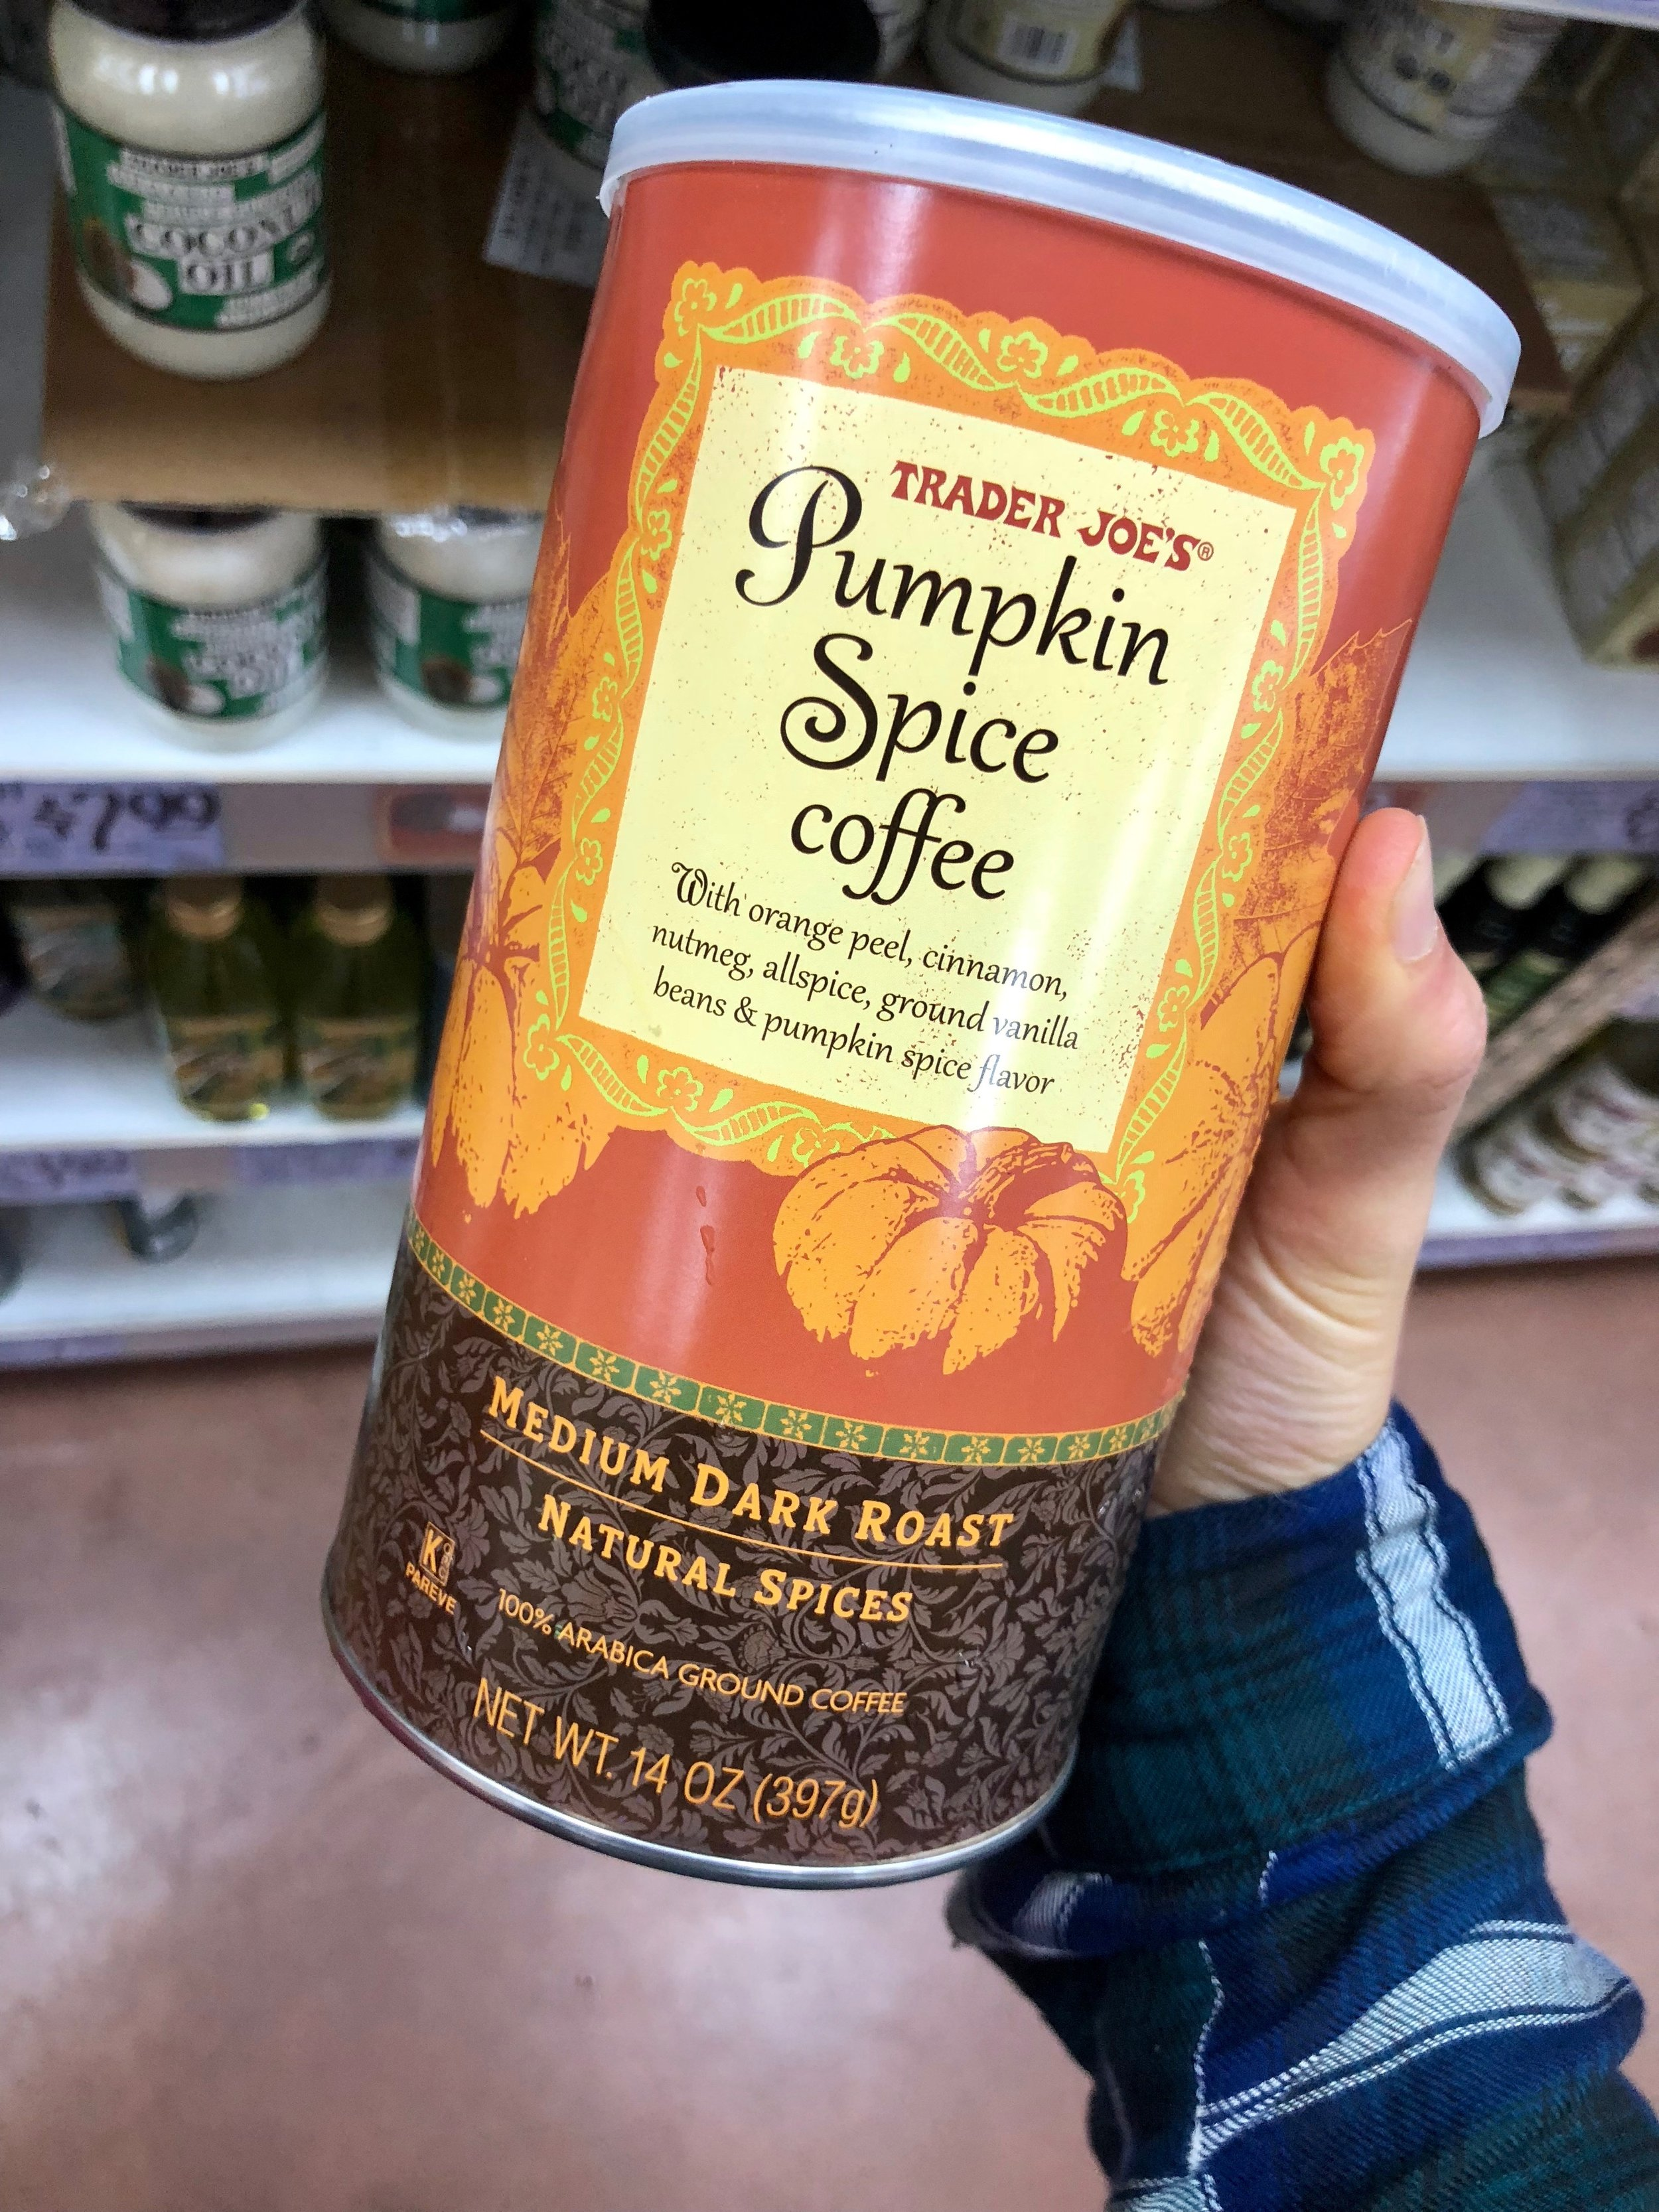 """Okay so this brand and flavor is not always a """"essential"""" but coffee is. Also, come fall… Pumpkin Spice Coffee is actually a must and this one was TJ's so I knew it'd be legit. Only $7.99 for 14 oz. and a really good flavor. Not too pumpkin-y, but enough to be like """"oh yeah it's fall baby"""" ya feel me??"""